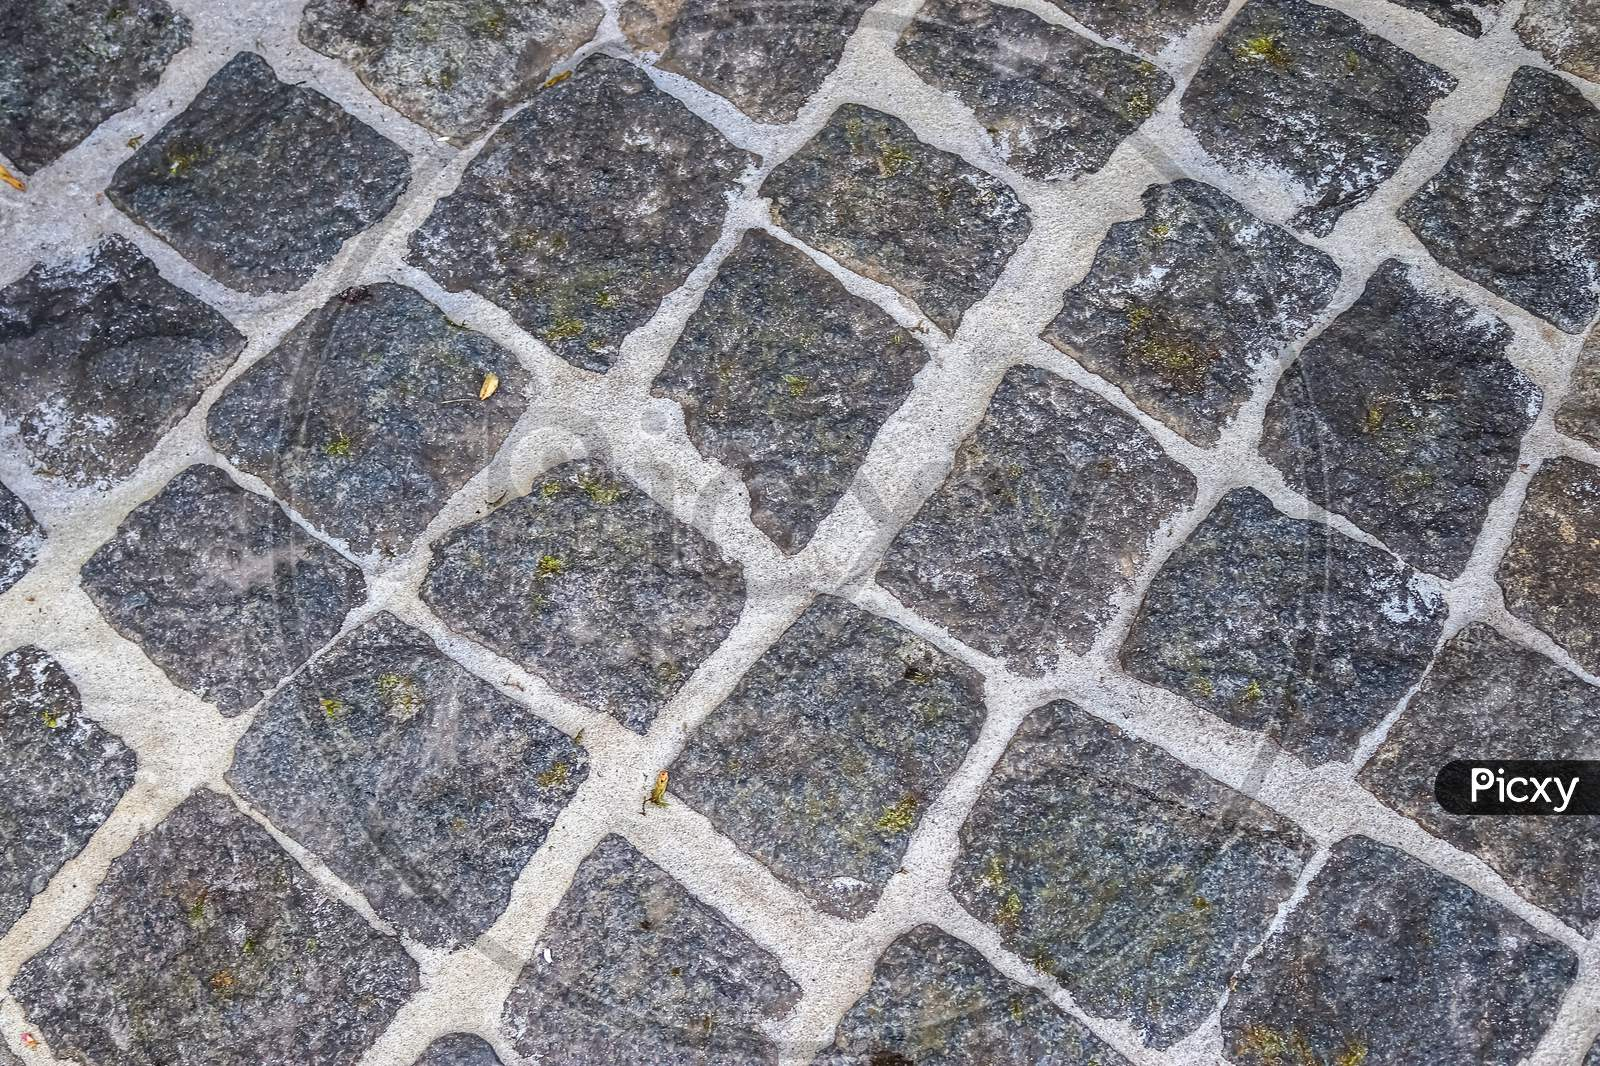 Detailed Close Up On Old Historical Cobblestone Roads And Walkways